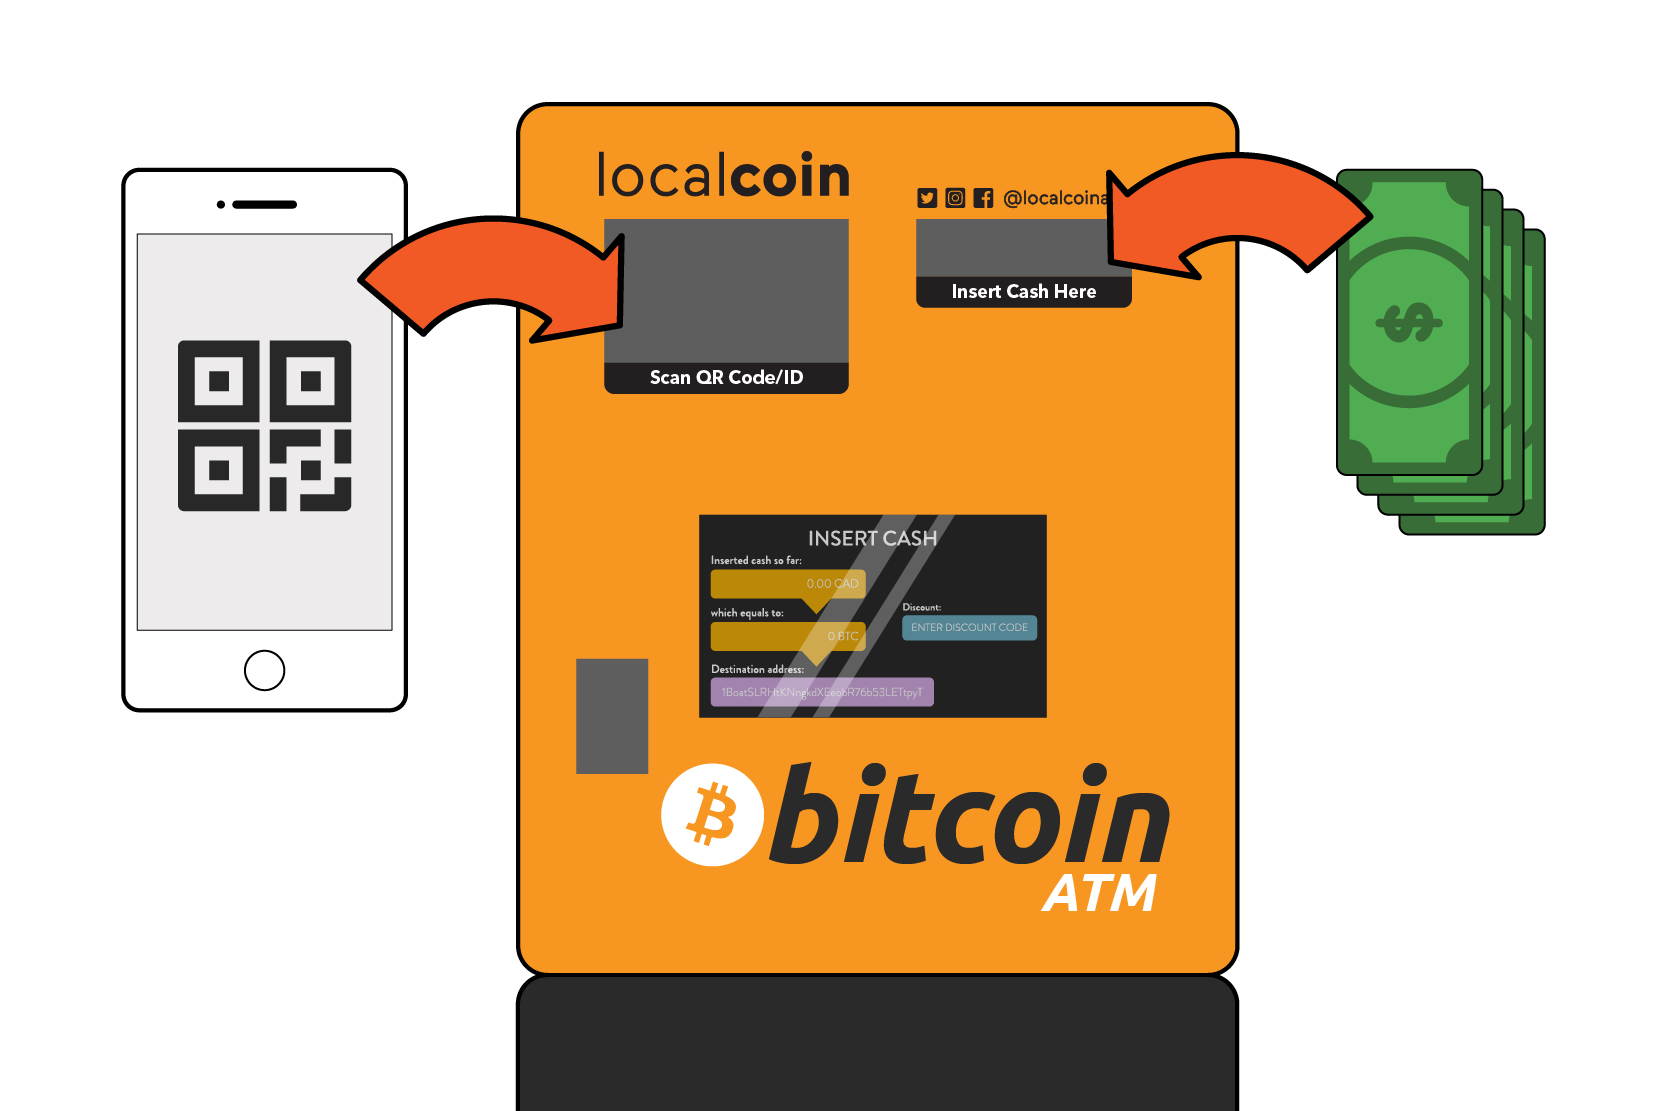 Scanning QR code at Bitcoin ATM